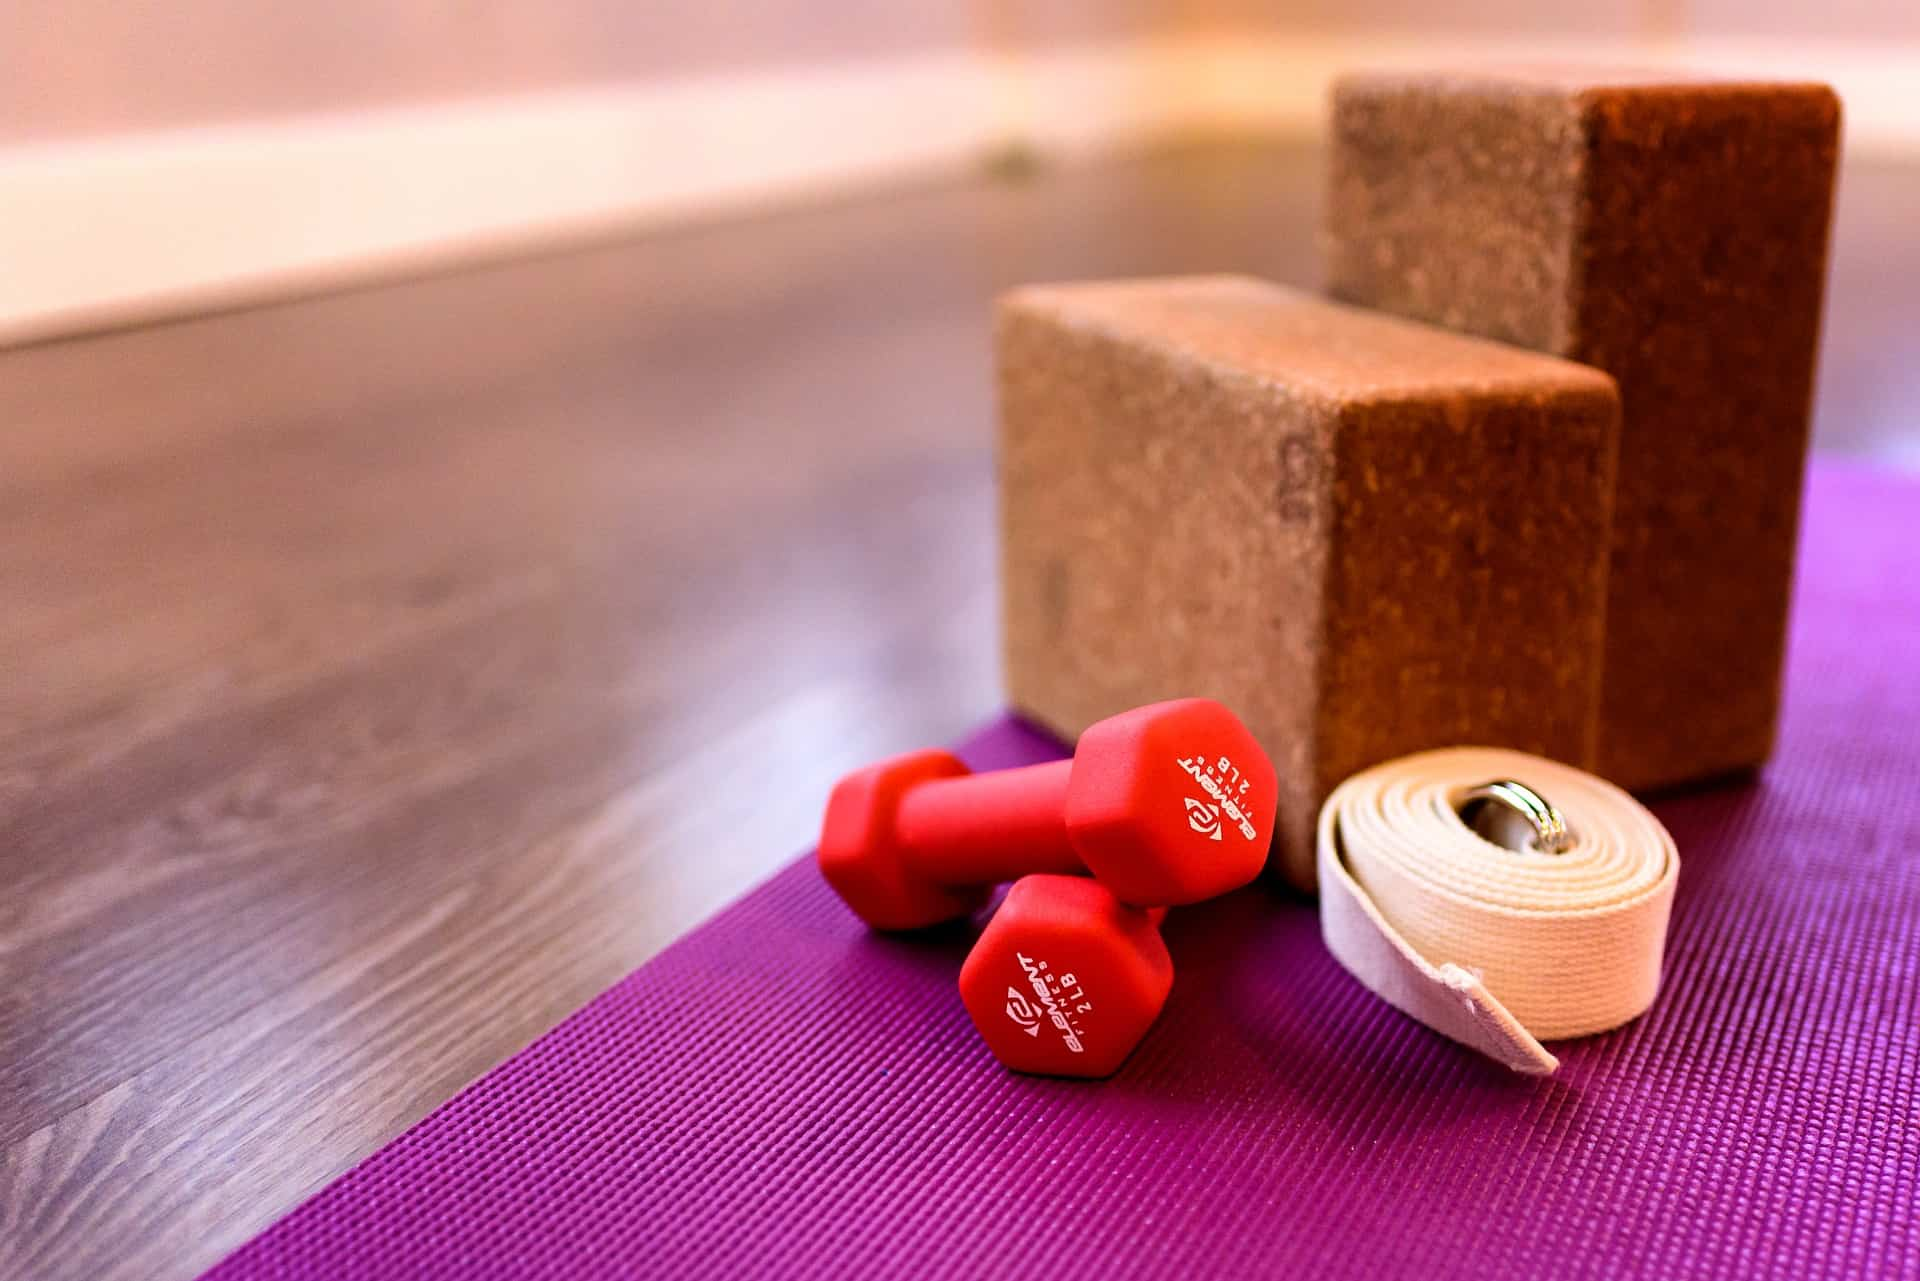 How To Use Yoga Blocks For Beginners